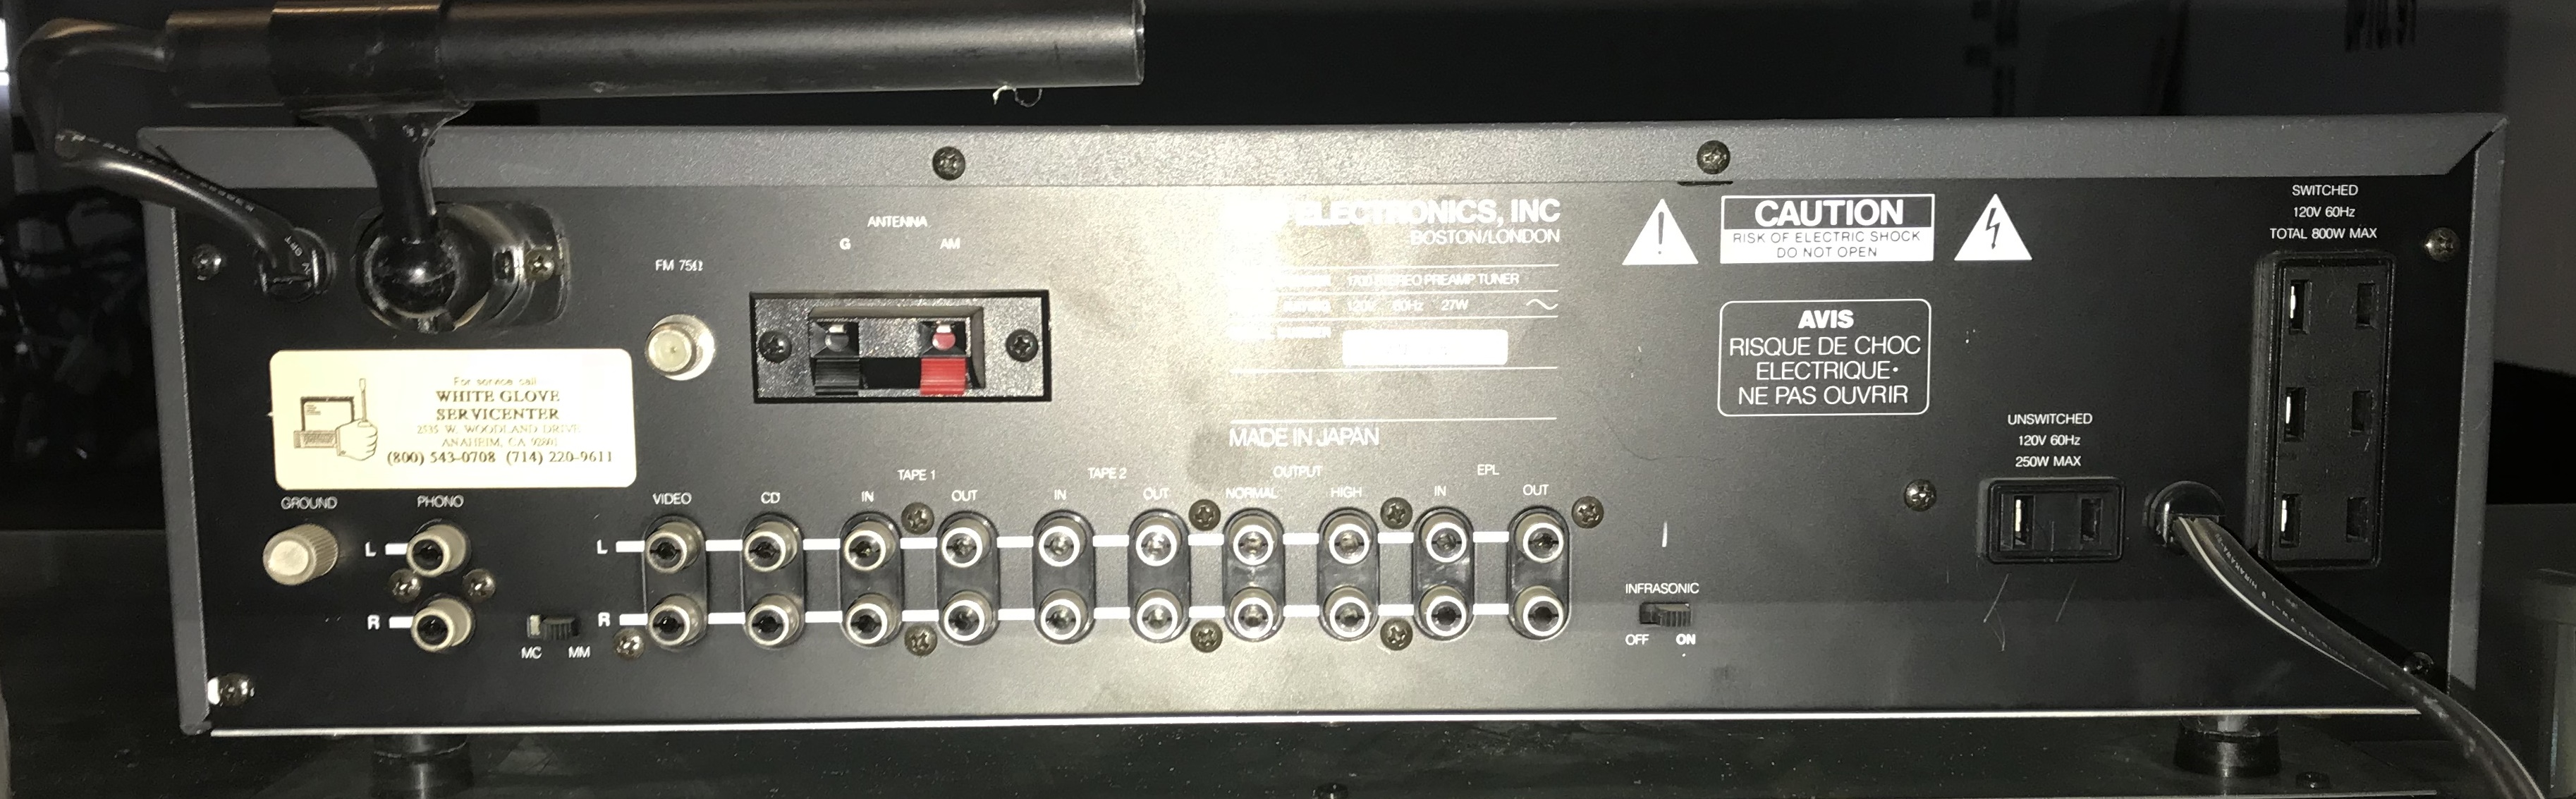 NAD_Monitor_Stereo_Receiver_Pre_Amp_Back